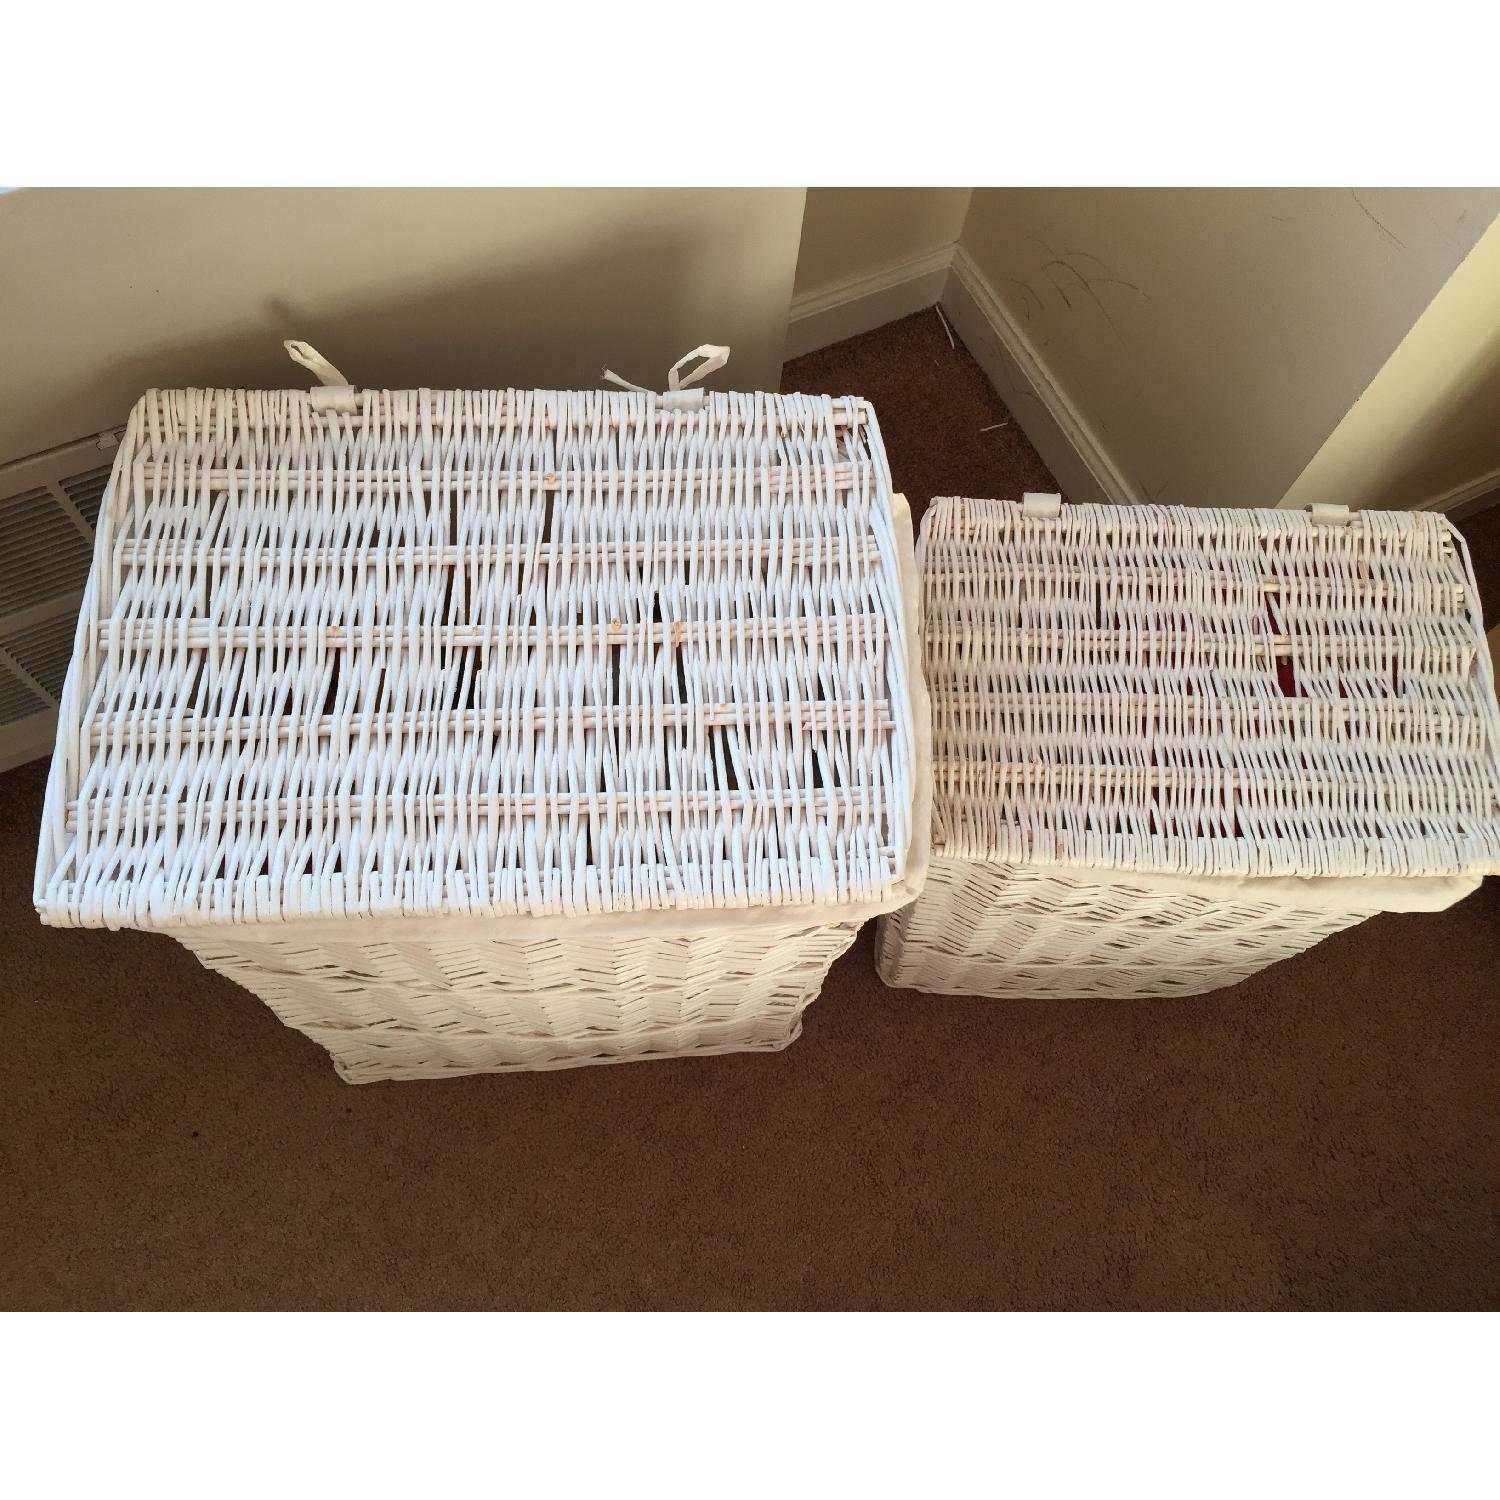 Badger Decorative Basket With White Liners Set Of 3  from d6qwfb5pdou4u.cloudfront.net